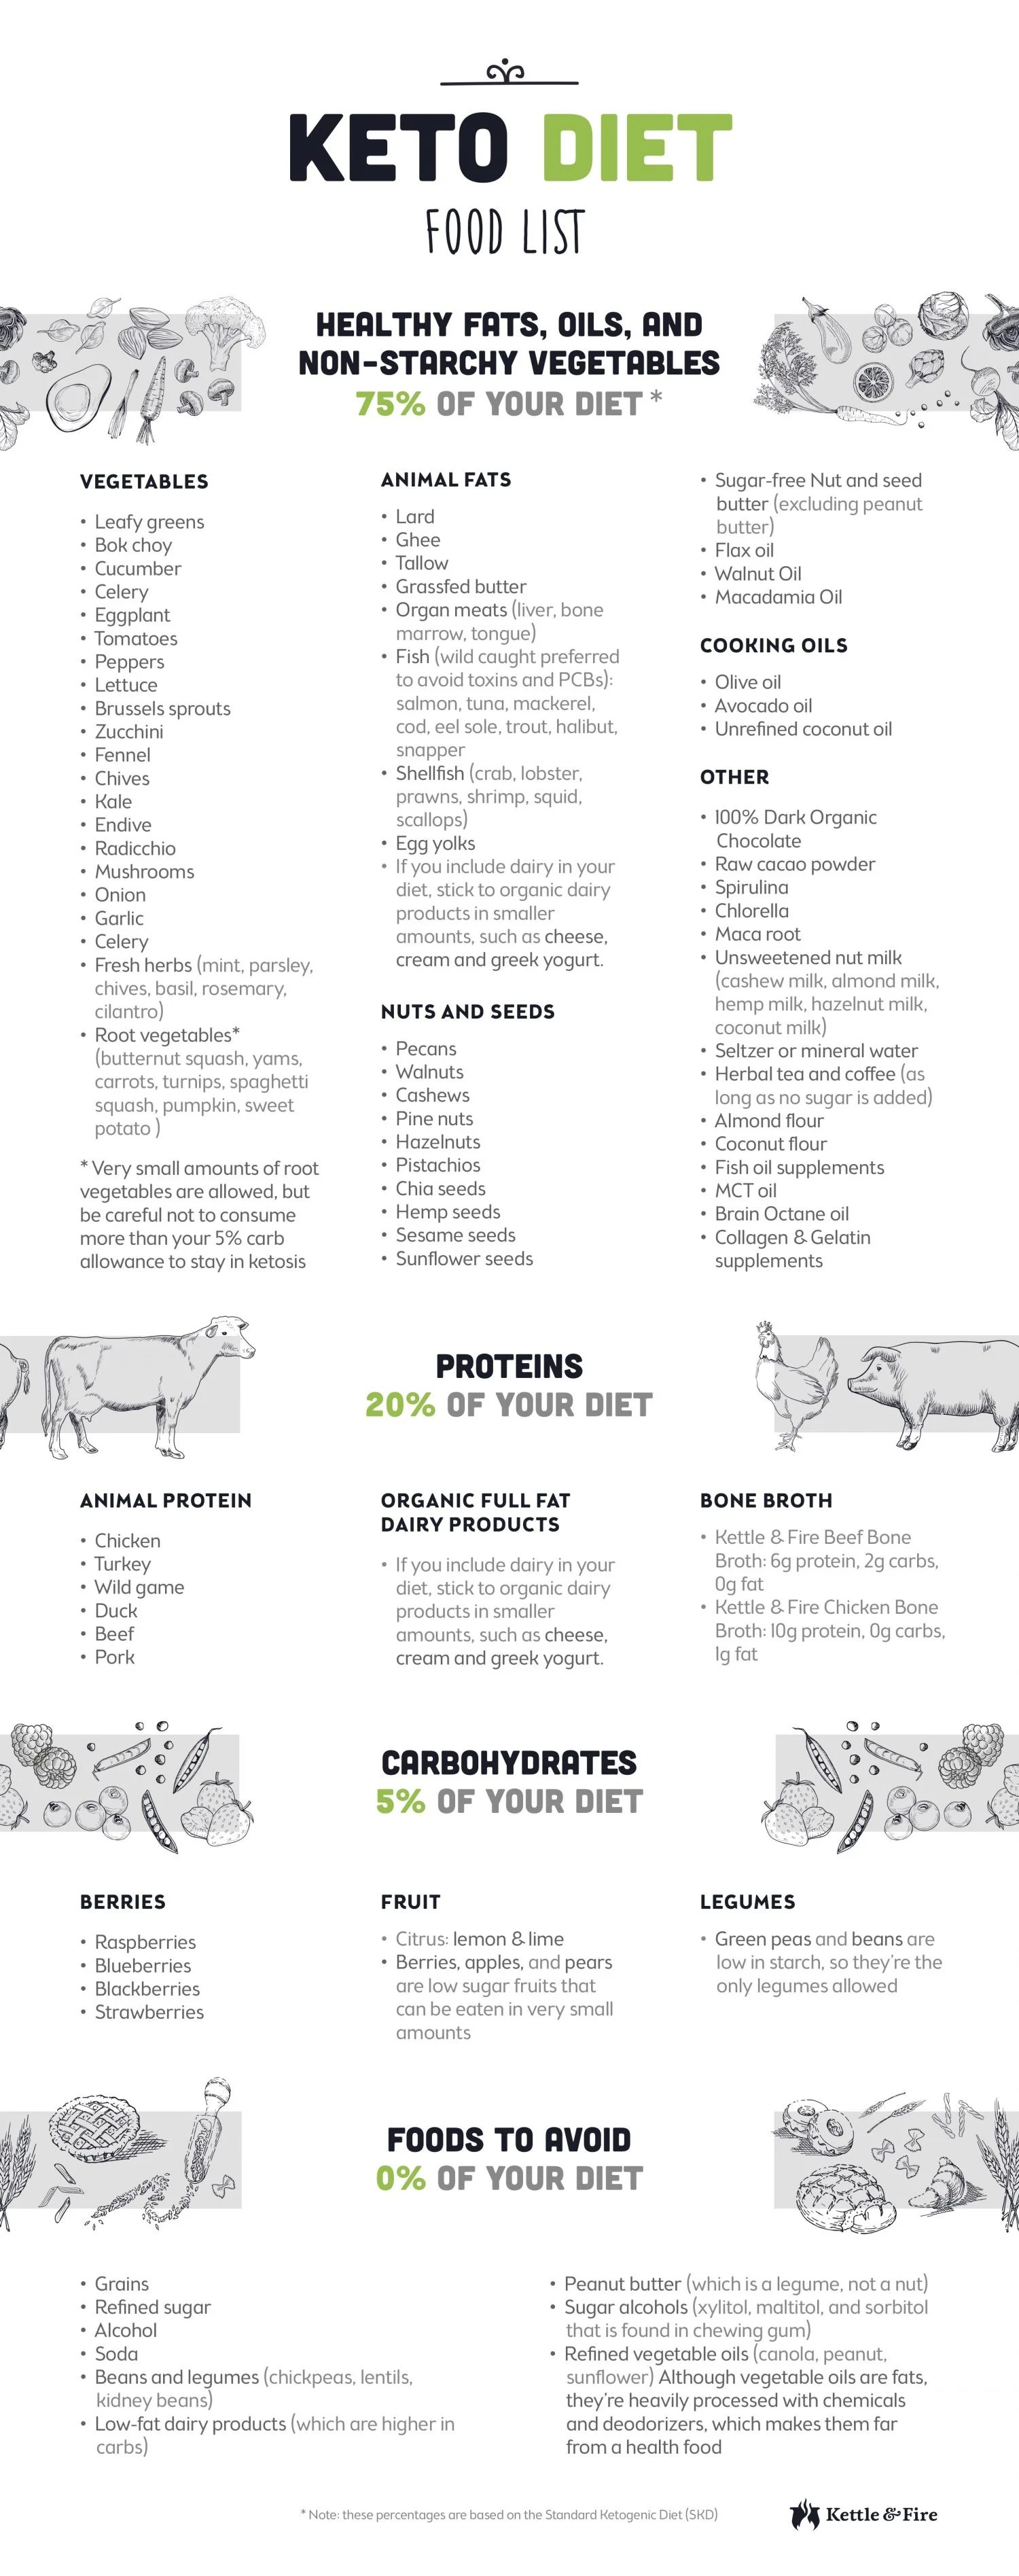 81 Ketot Food List For Ultimate Fat Burning Cheat Sheet